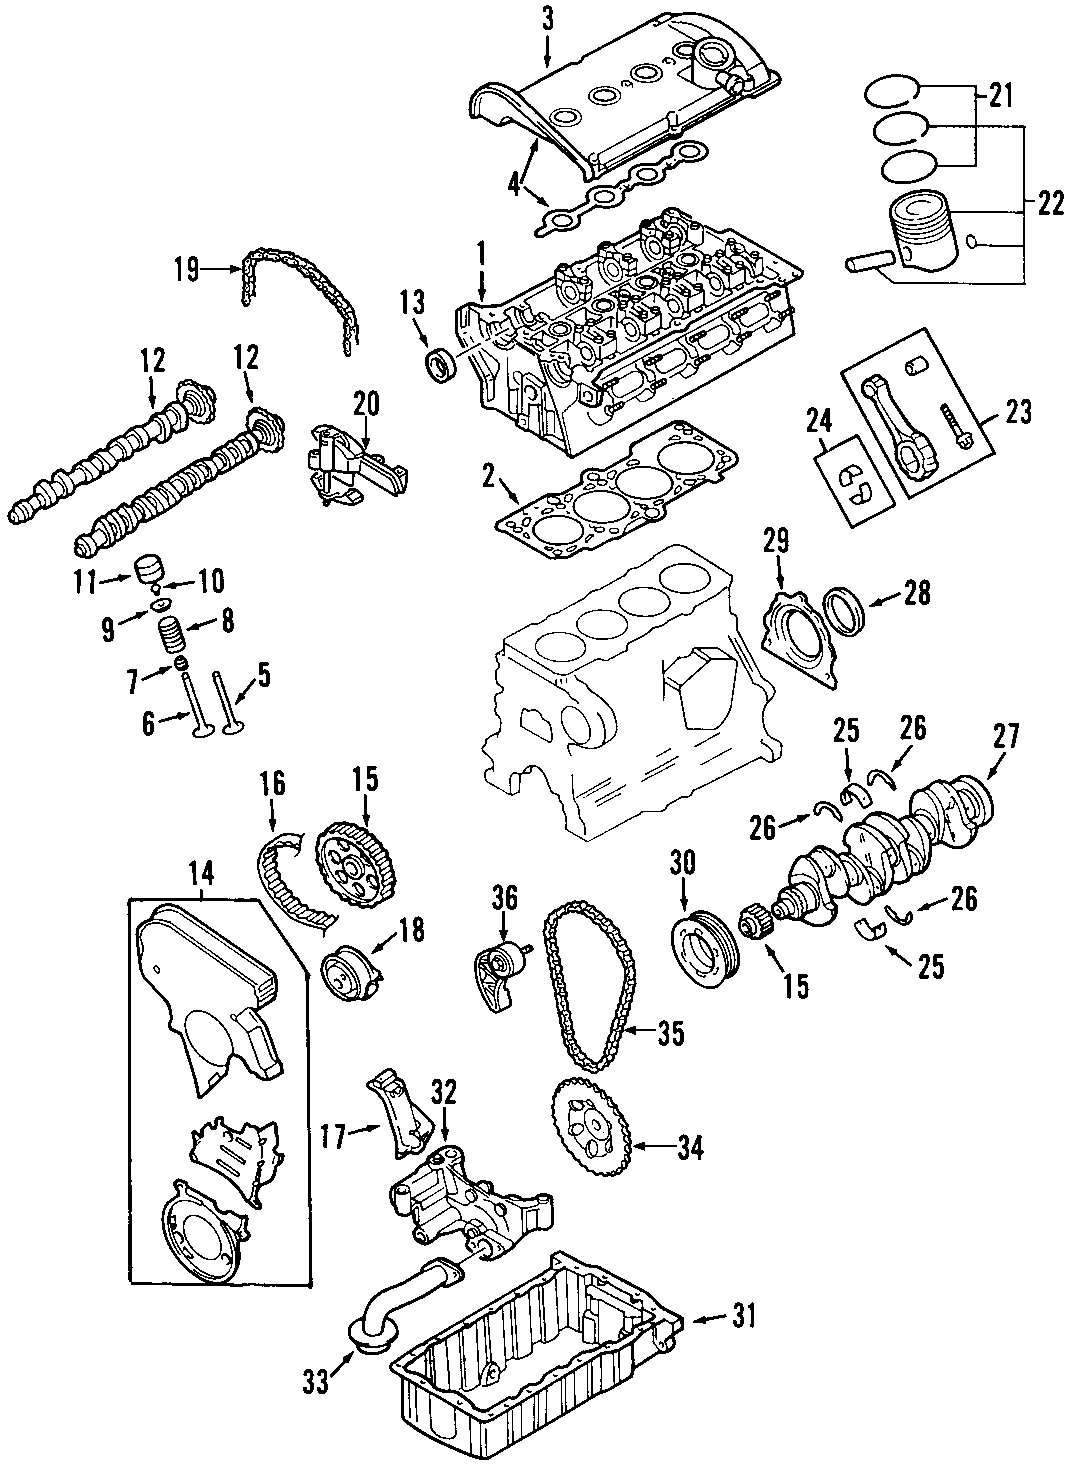 Volkswagen Beetle Engine Mount Rear